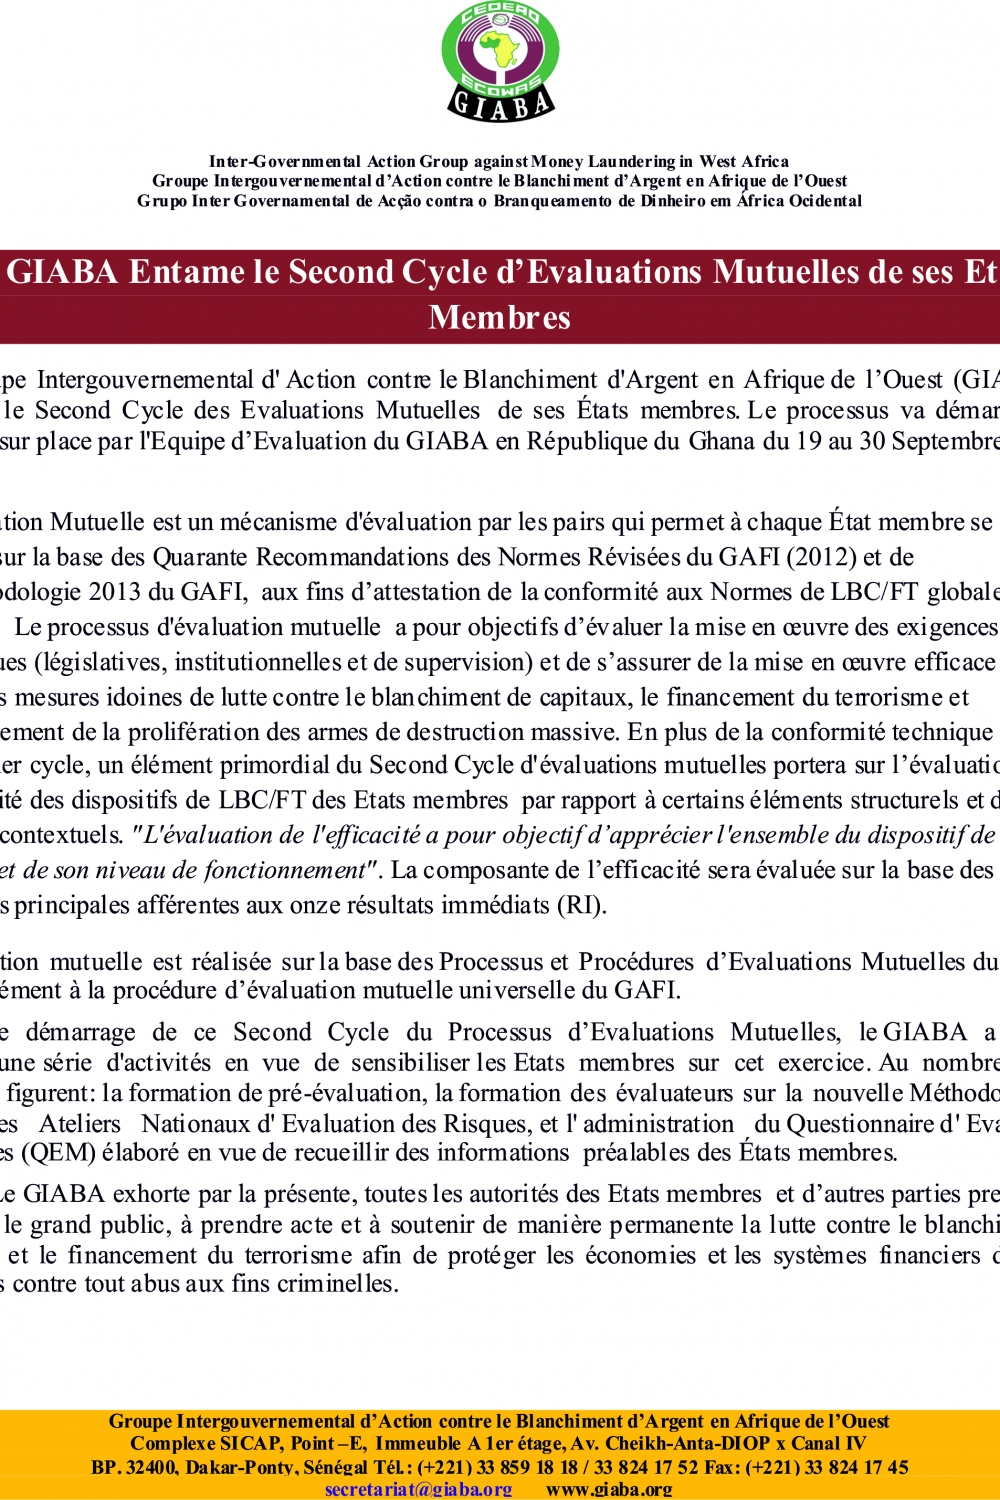 LE GIABA ENTAME LE 2 EME CYCLE D'EVALUATION